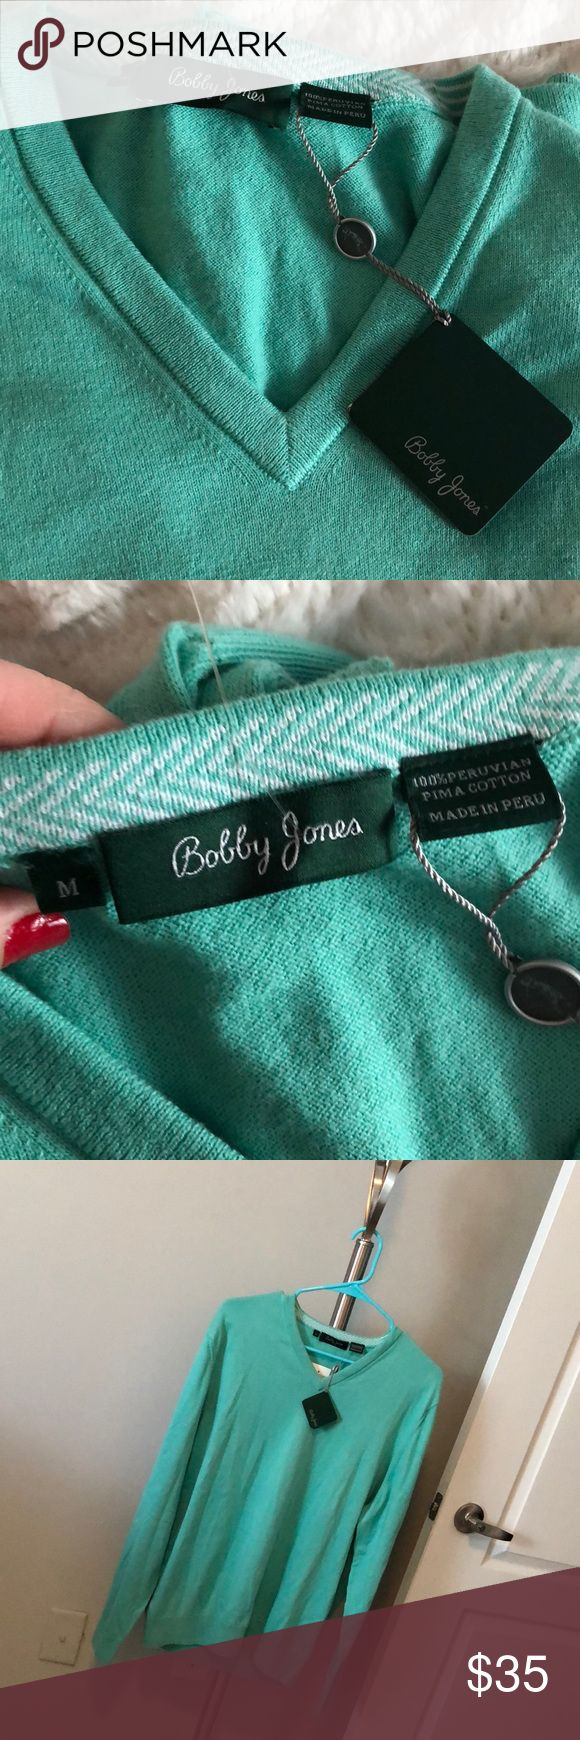 Bobby Jones 100% PIMA Cotton Sweater Tiffany Blue 100% PIMA Cotton Men's Sweater, size M, in Tiffany Blue. Made in Peru. Brand new, never worn. New with tags! Keep warm this Winter and snuggle with your Love in this warm, fashionable sweater! bobby jones Sweaters V-Neck